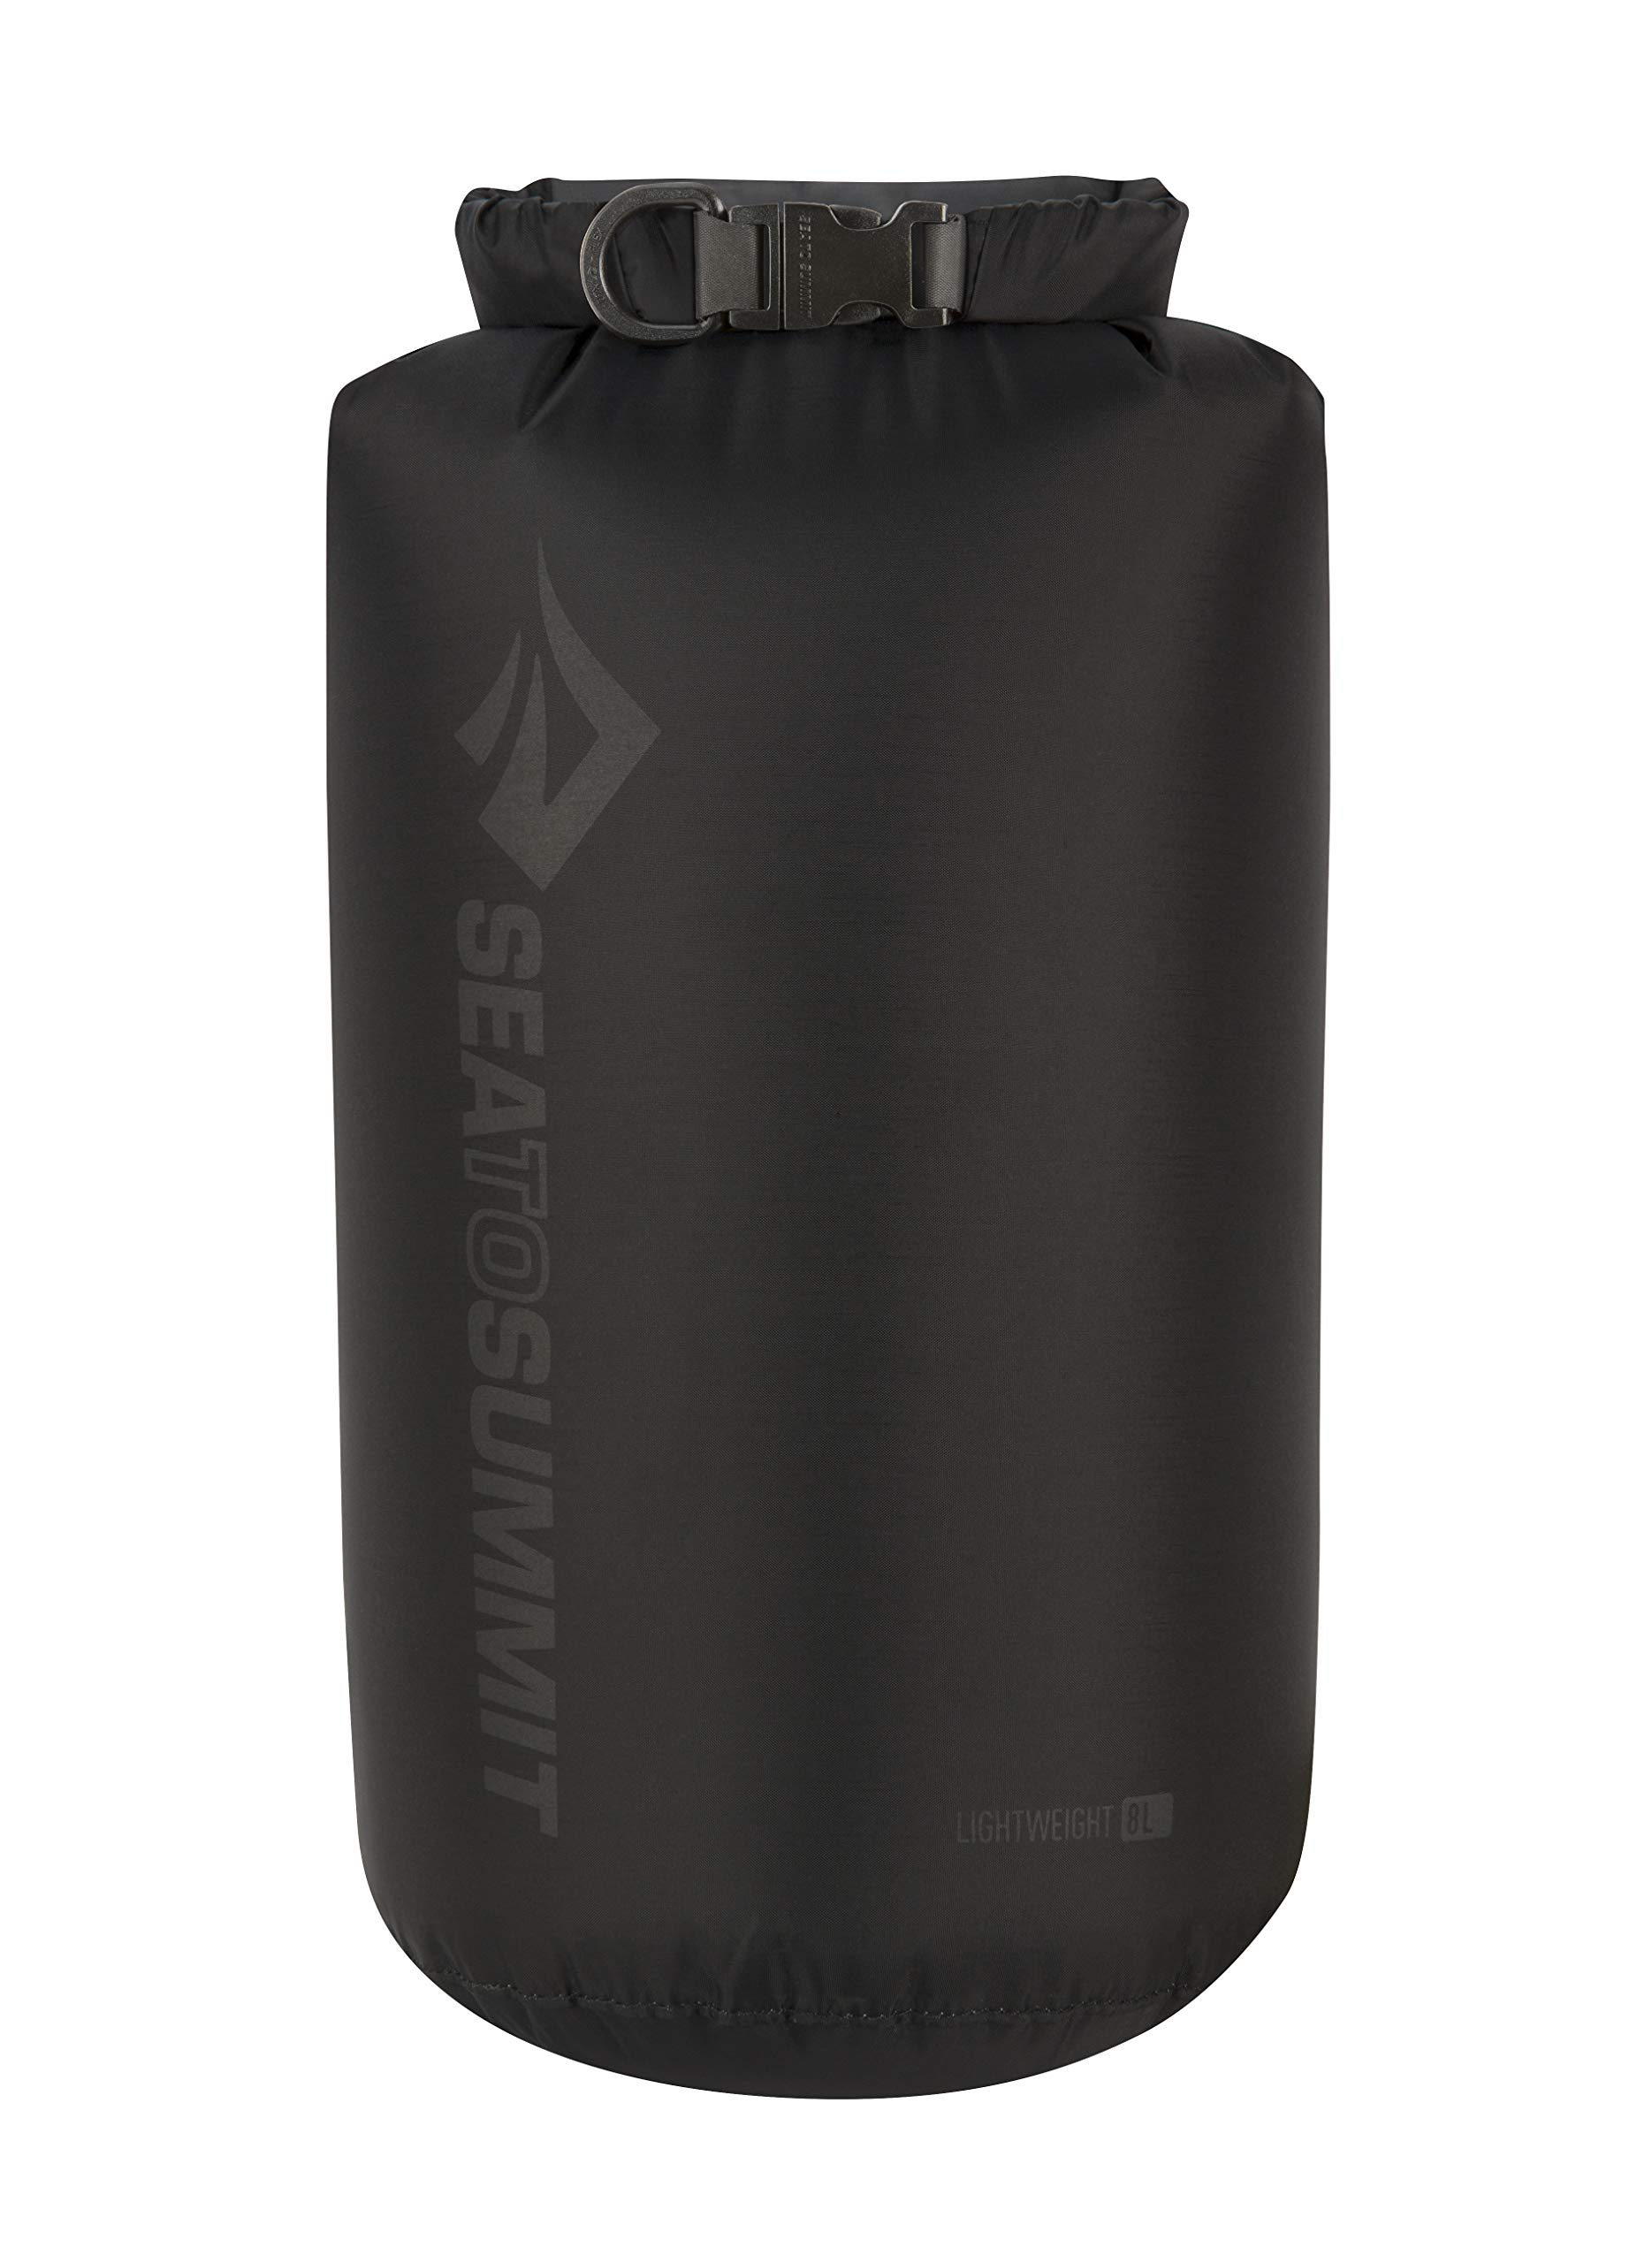 Sea to Summit Lightweight Dry Sack (Black, 8 Liter) by Sea to Summit